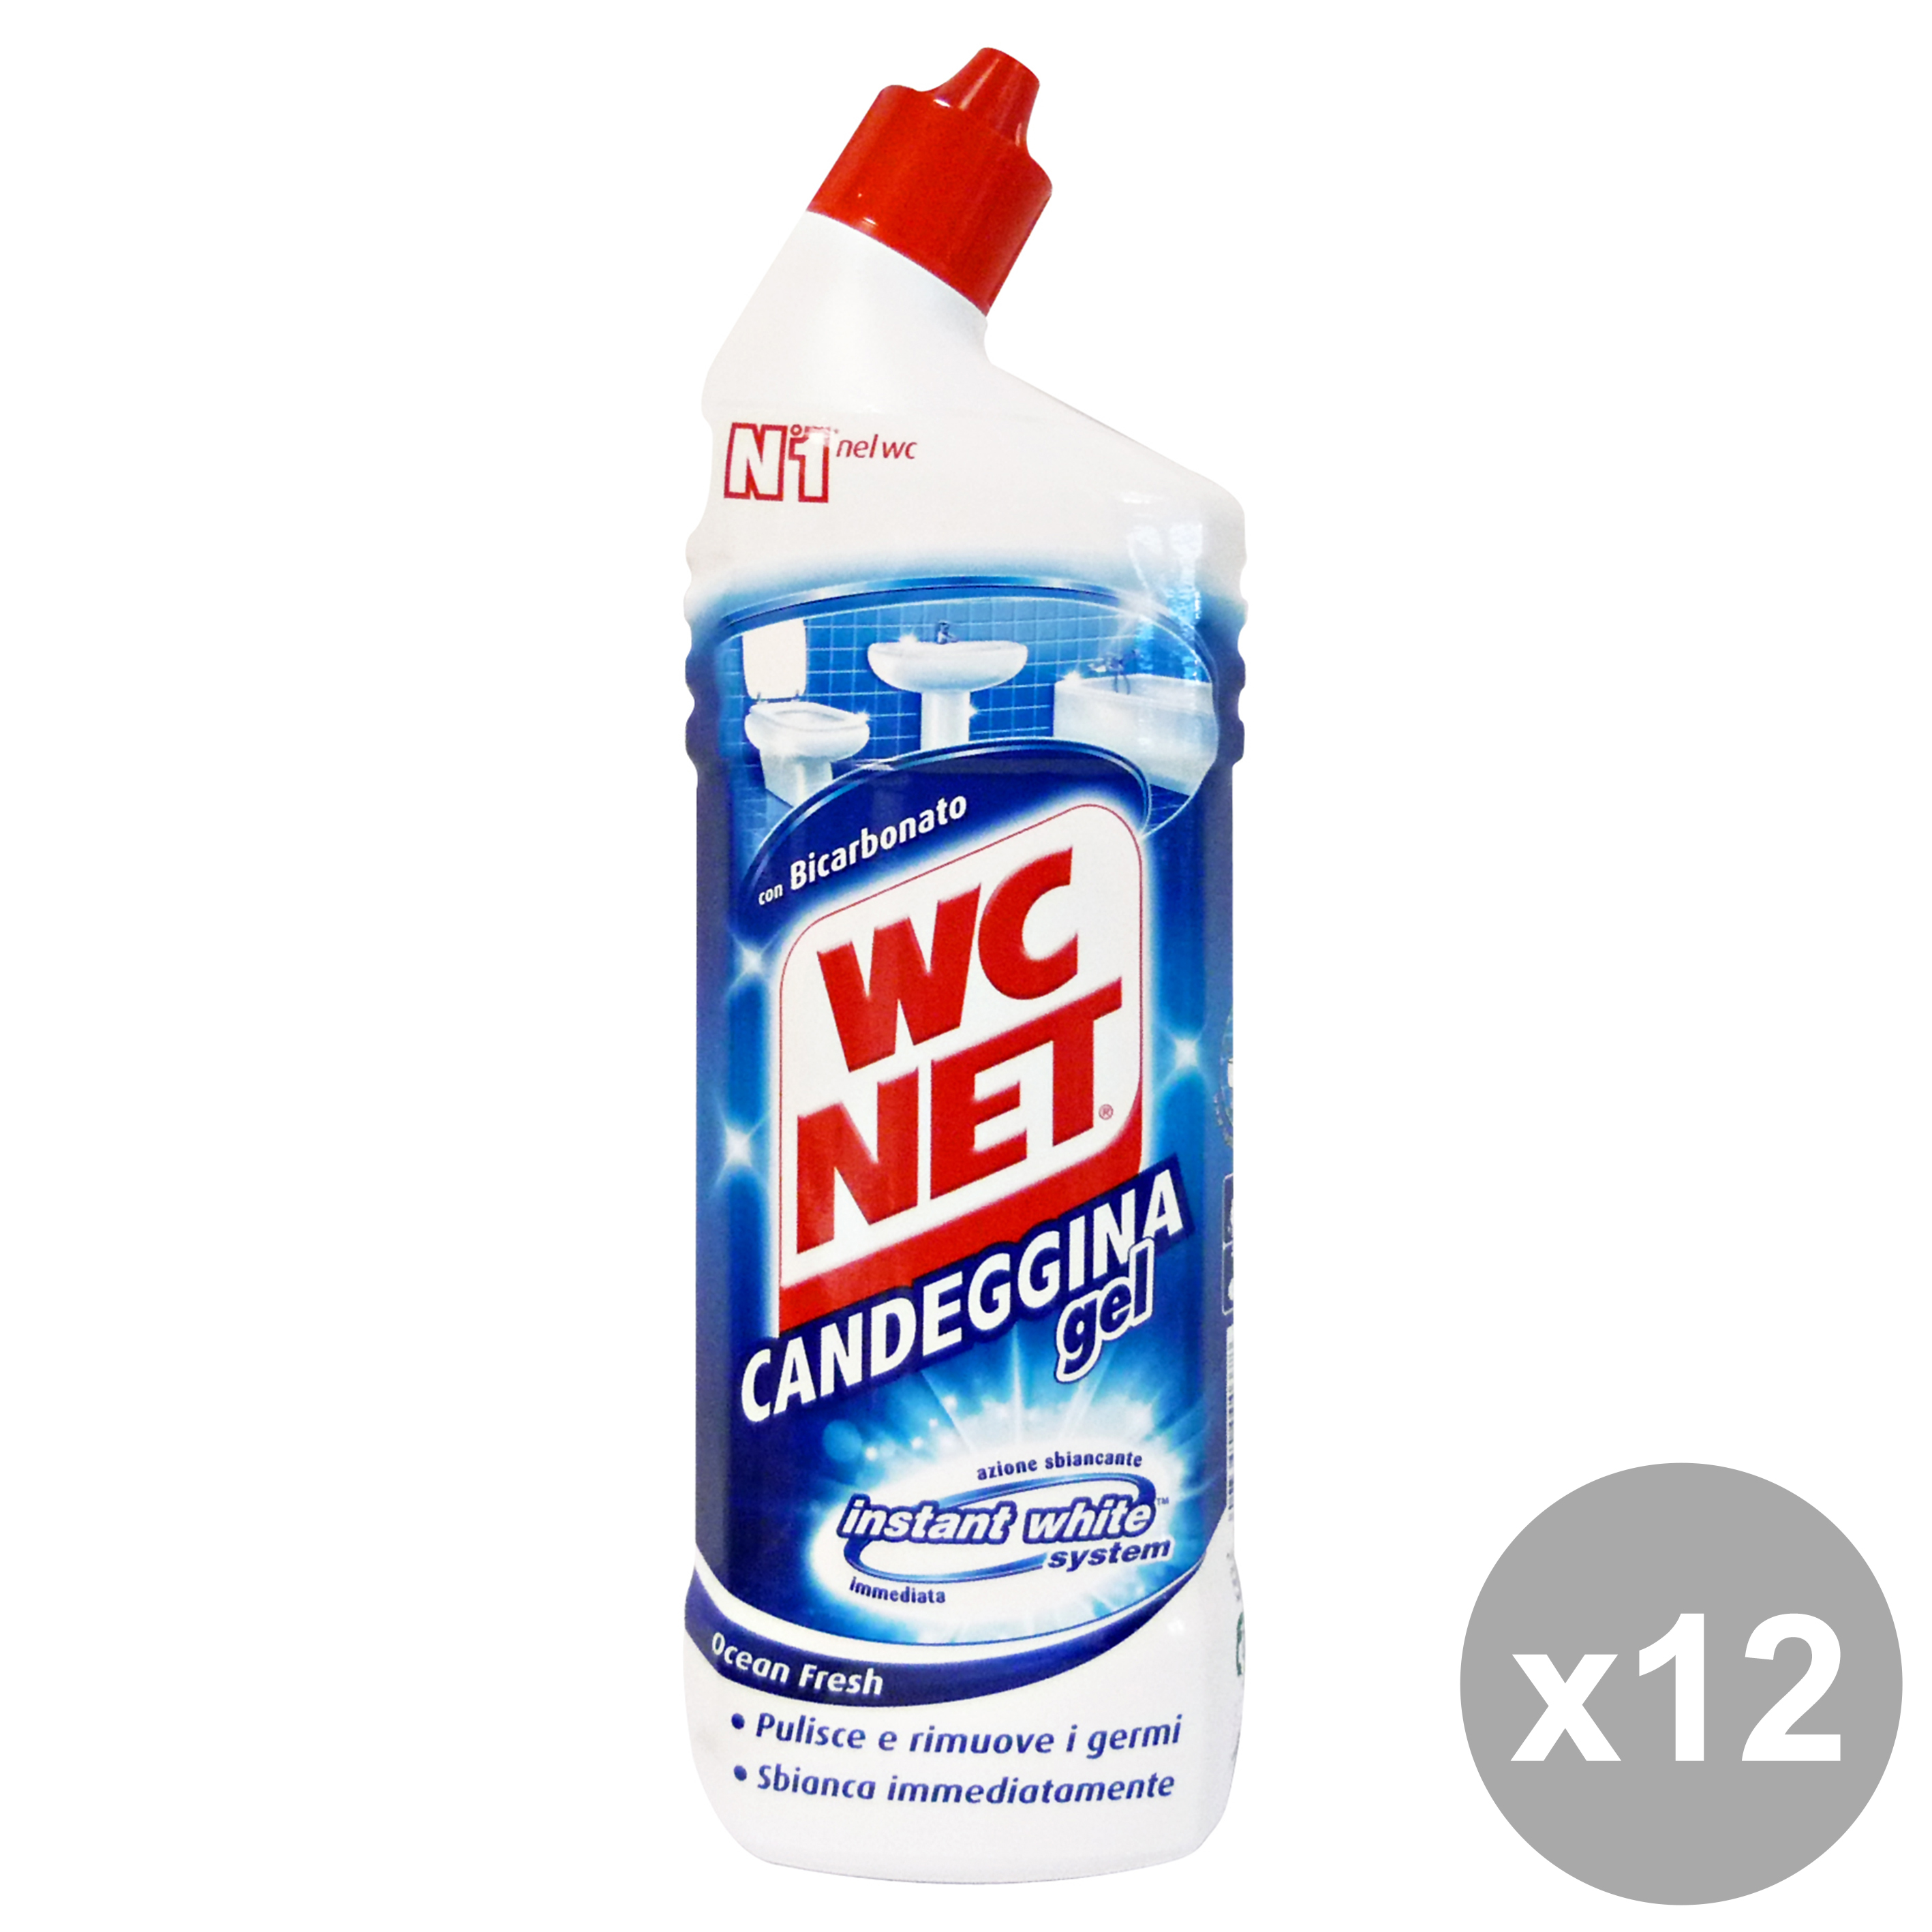 WC NET Set 12 Candeggina Gel 700 Ml. Detergenti Casa